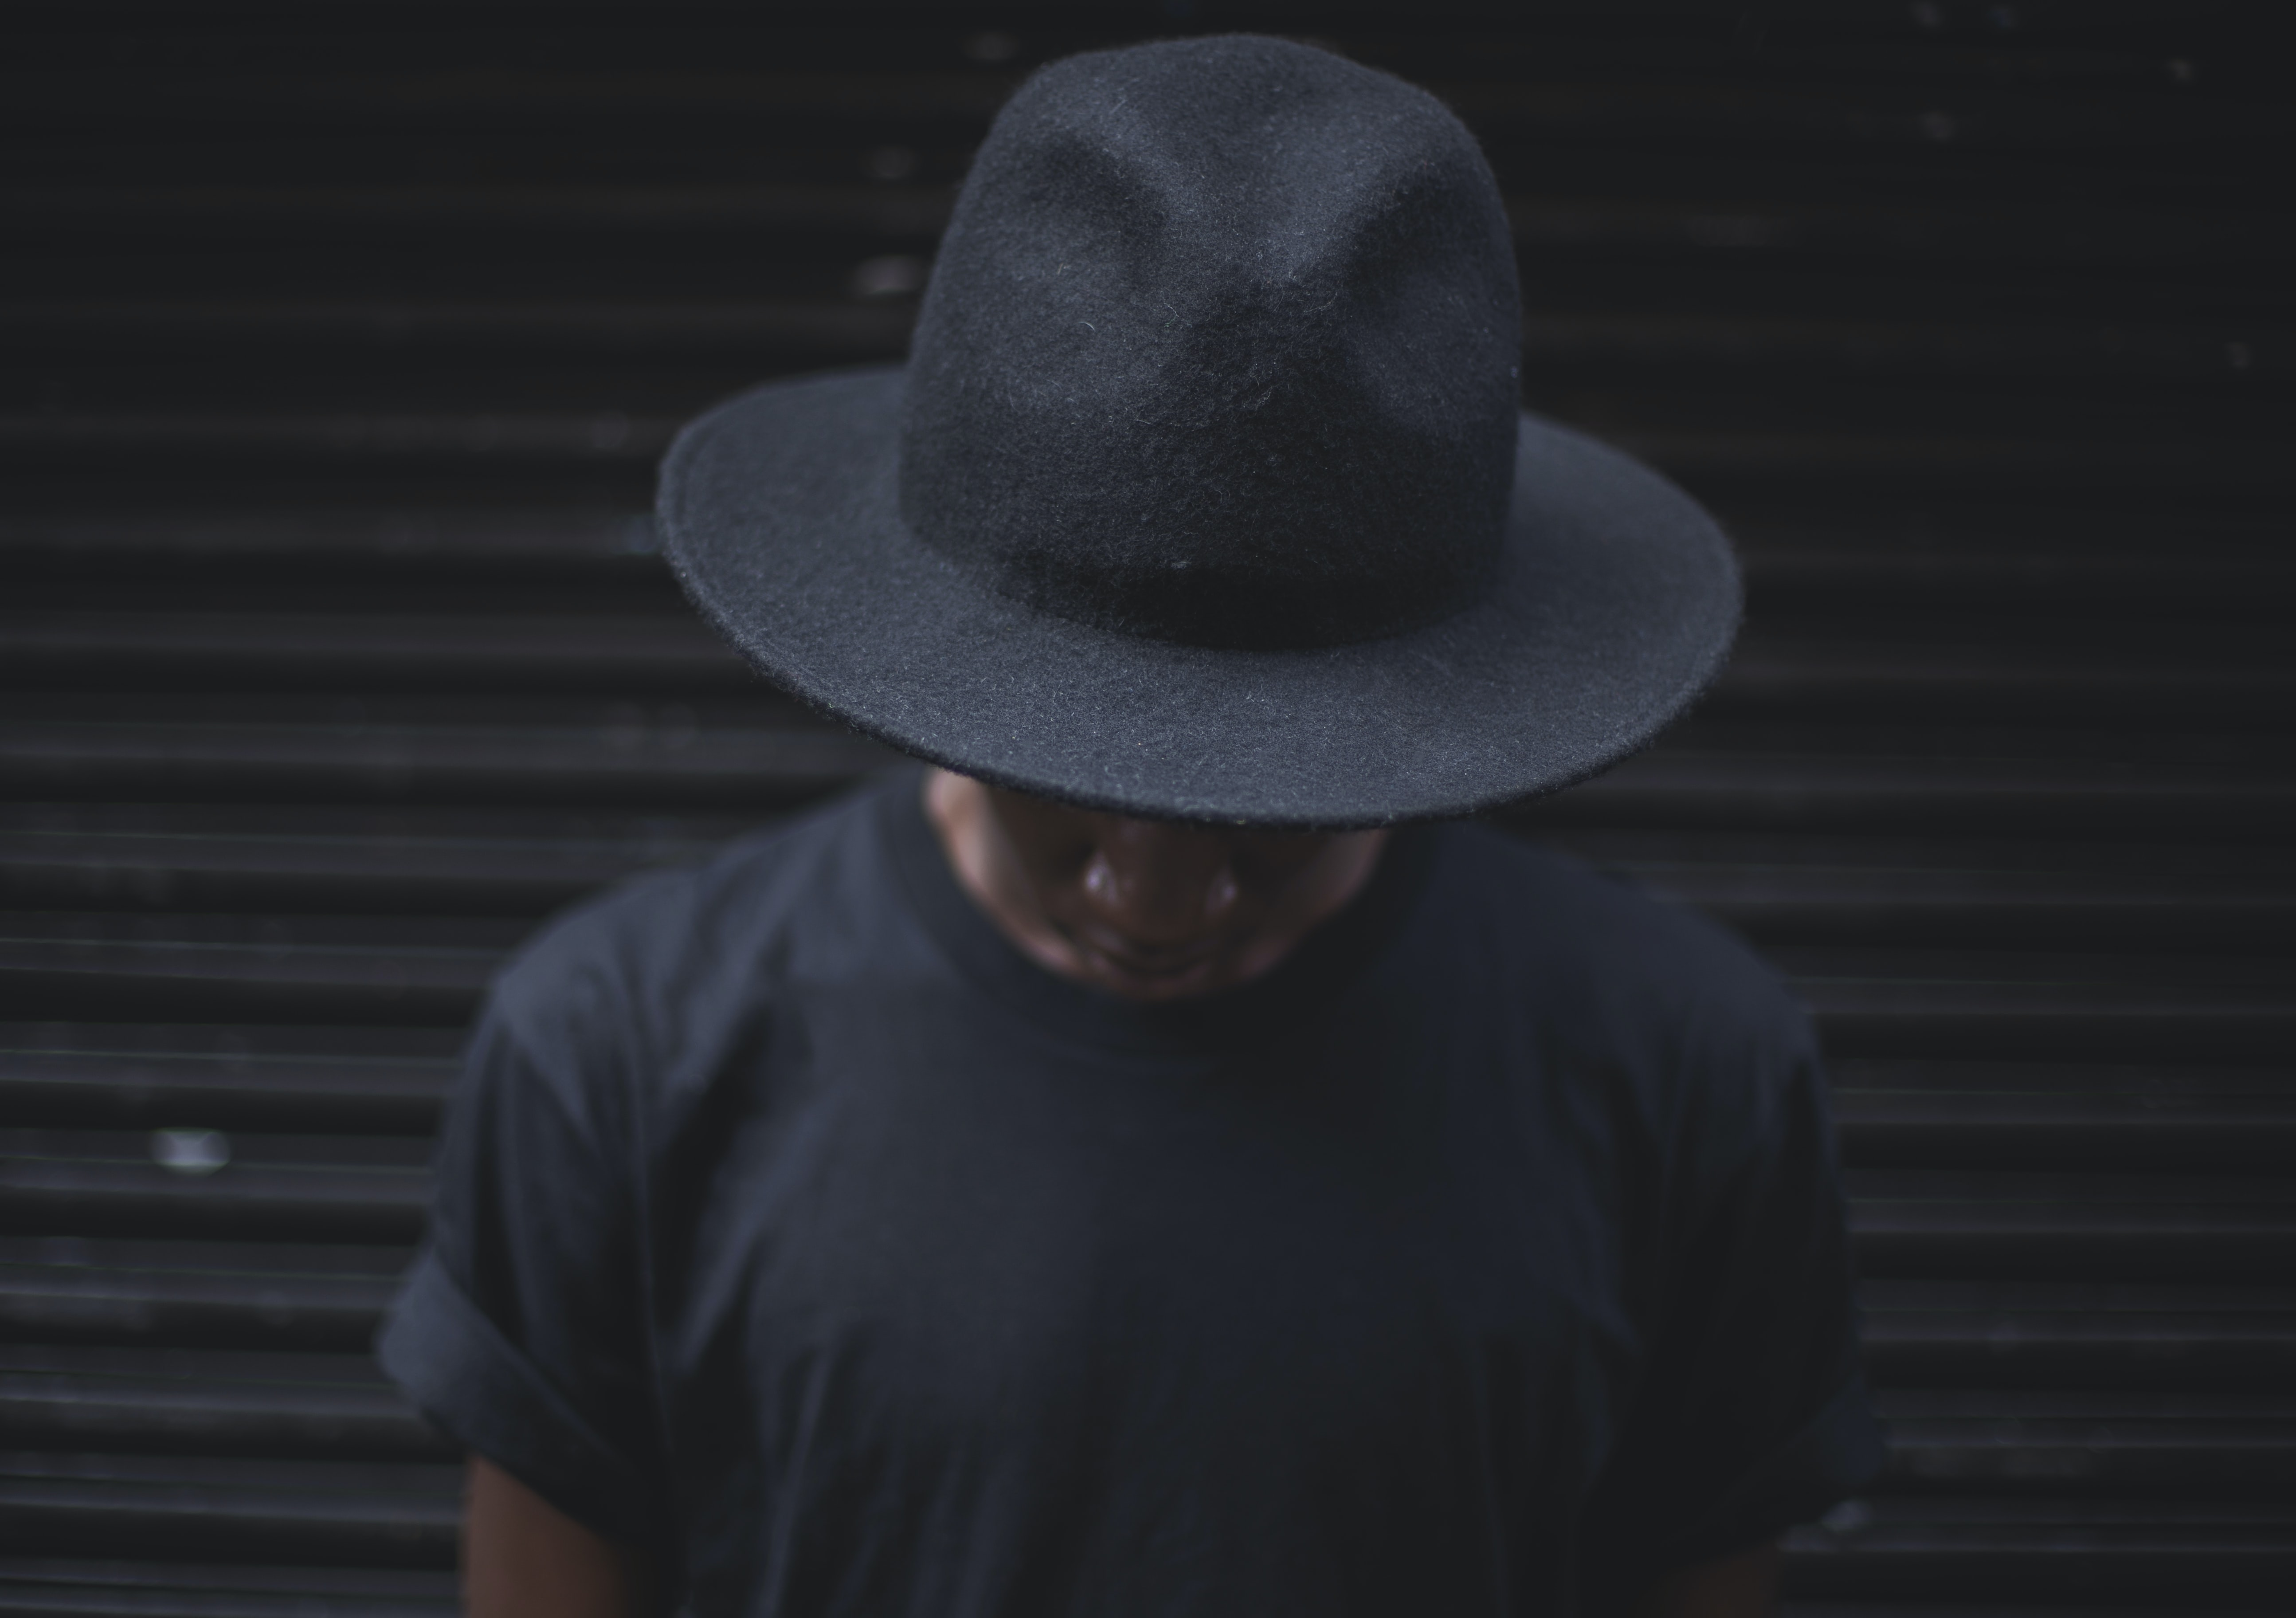 photo of person wearing black fedora hat